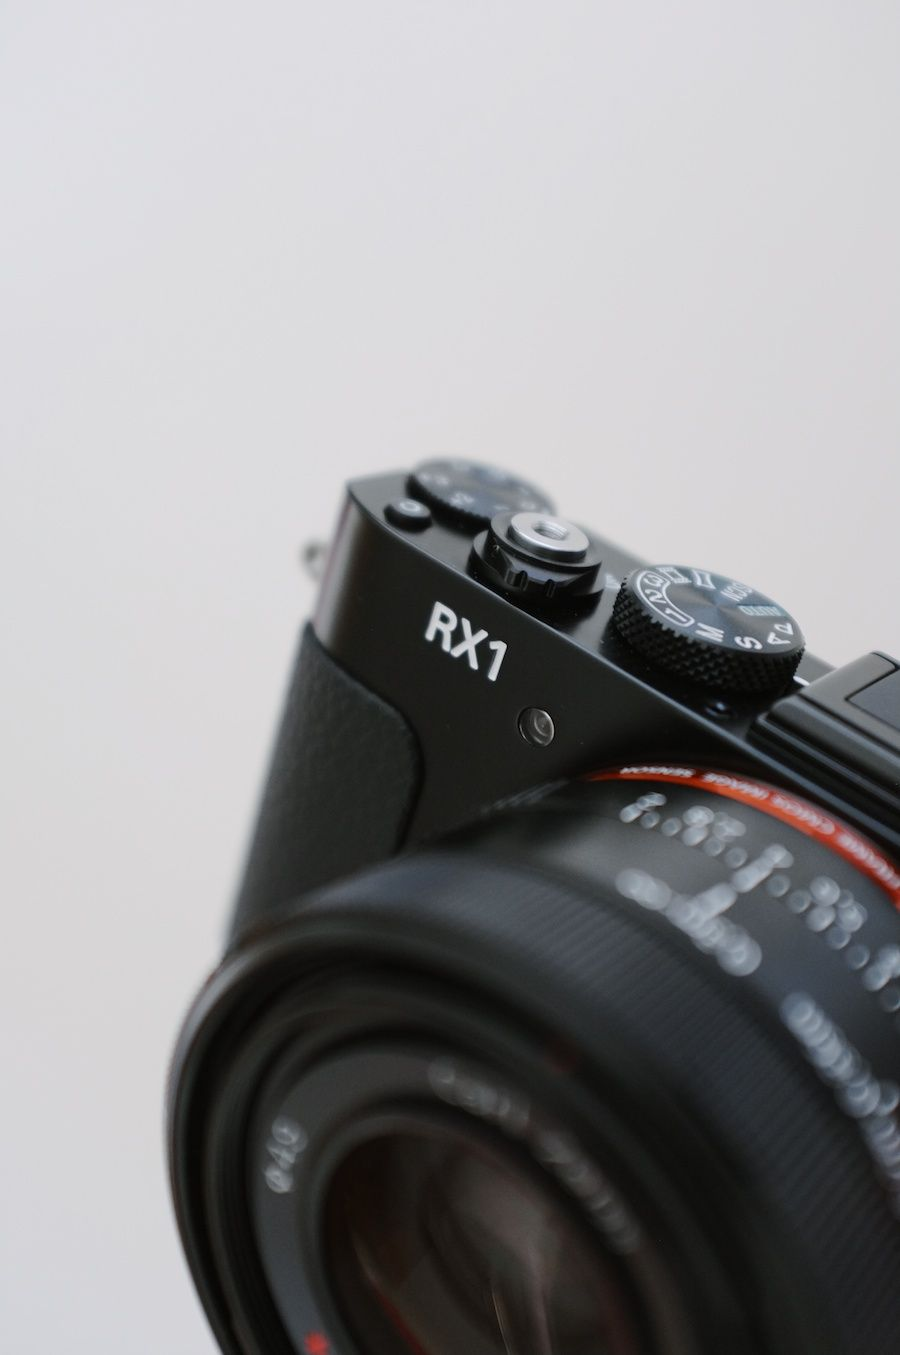 Sony RX1 Review | Blende, Lederhülle und Sony